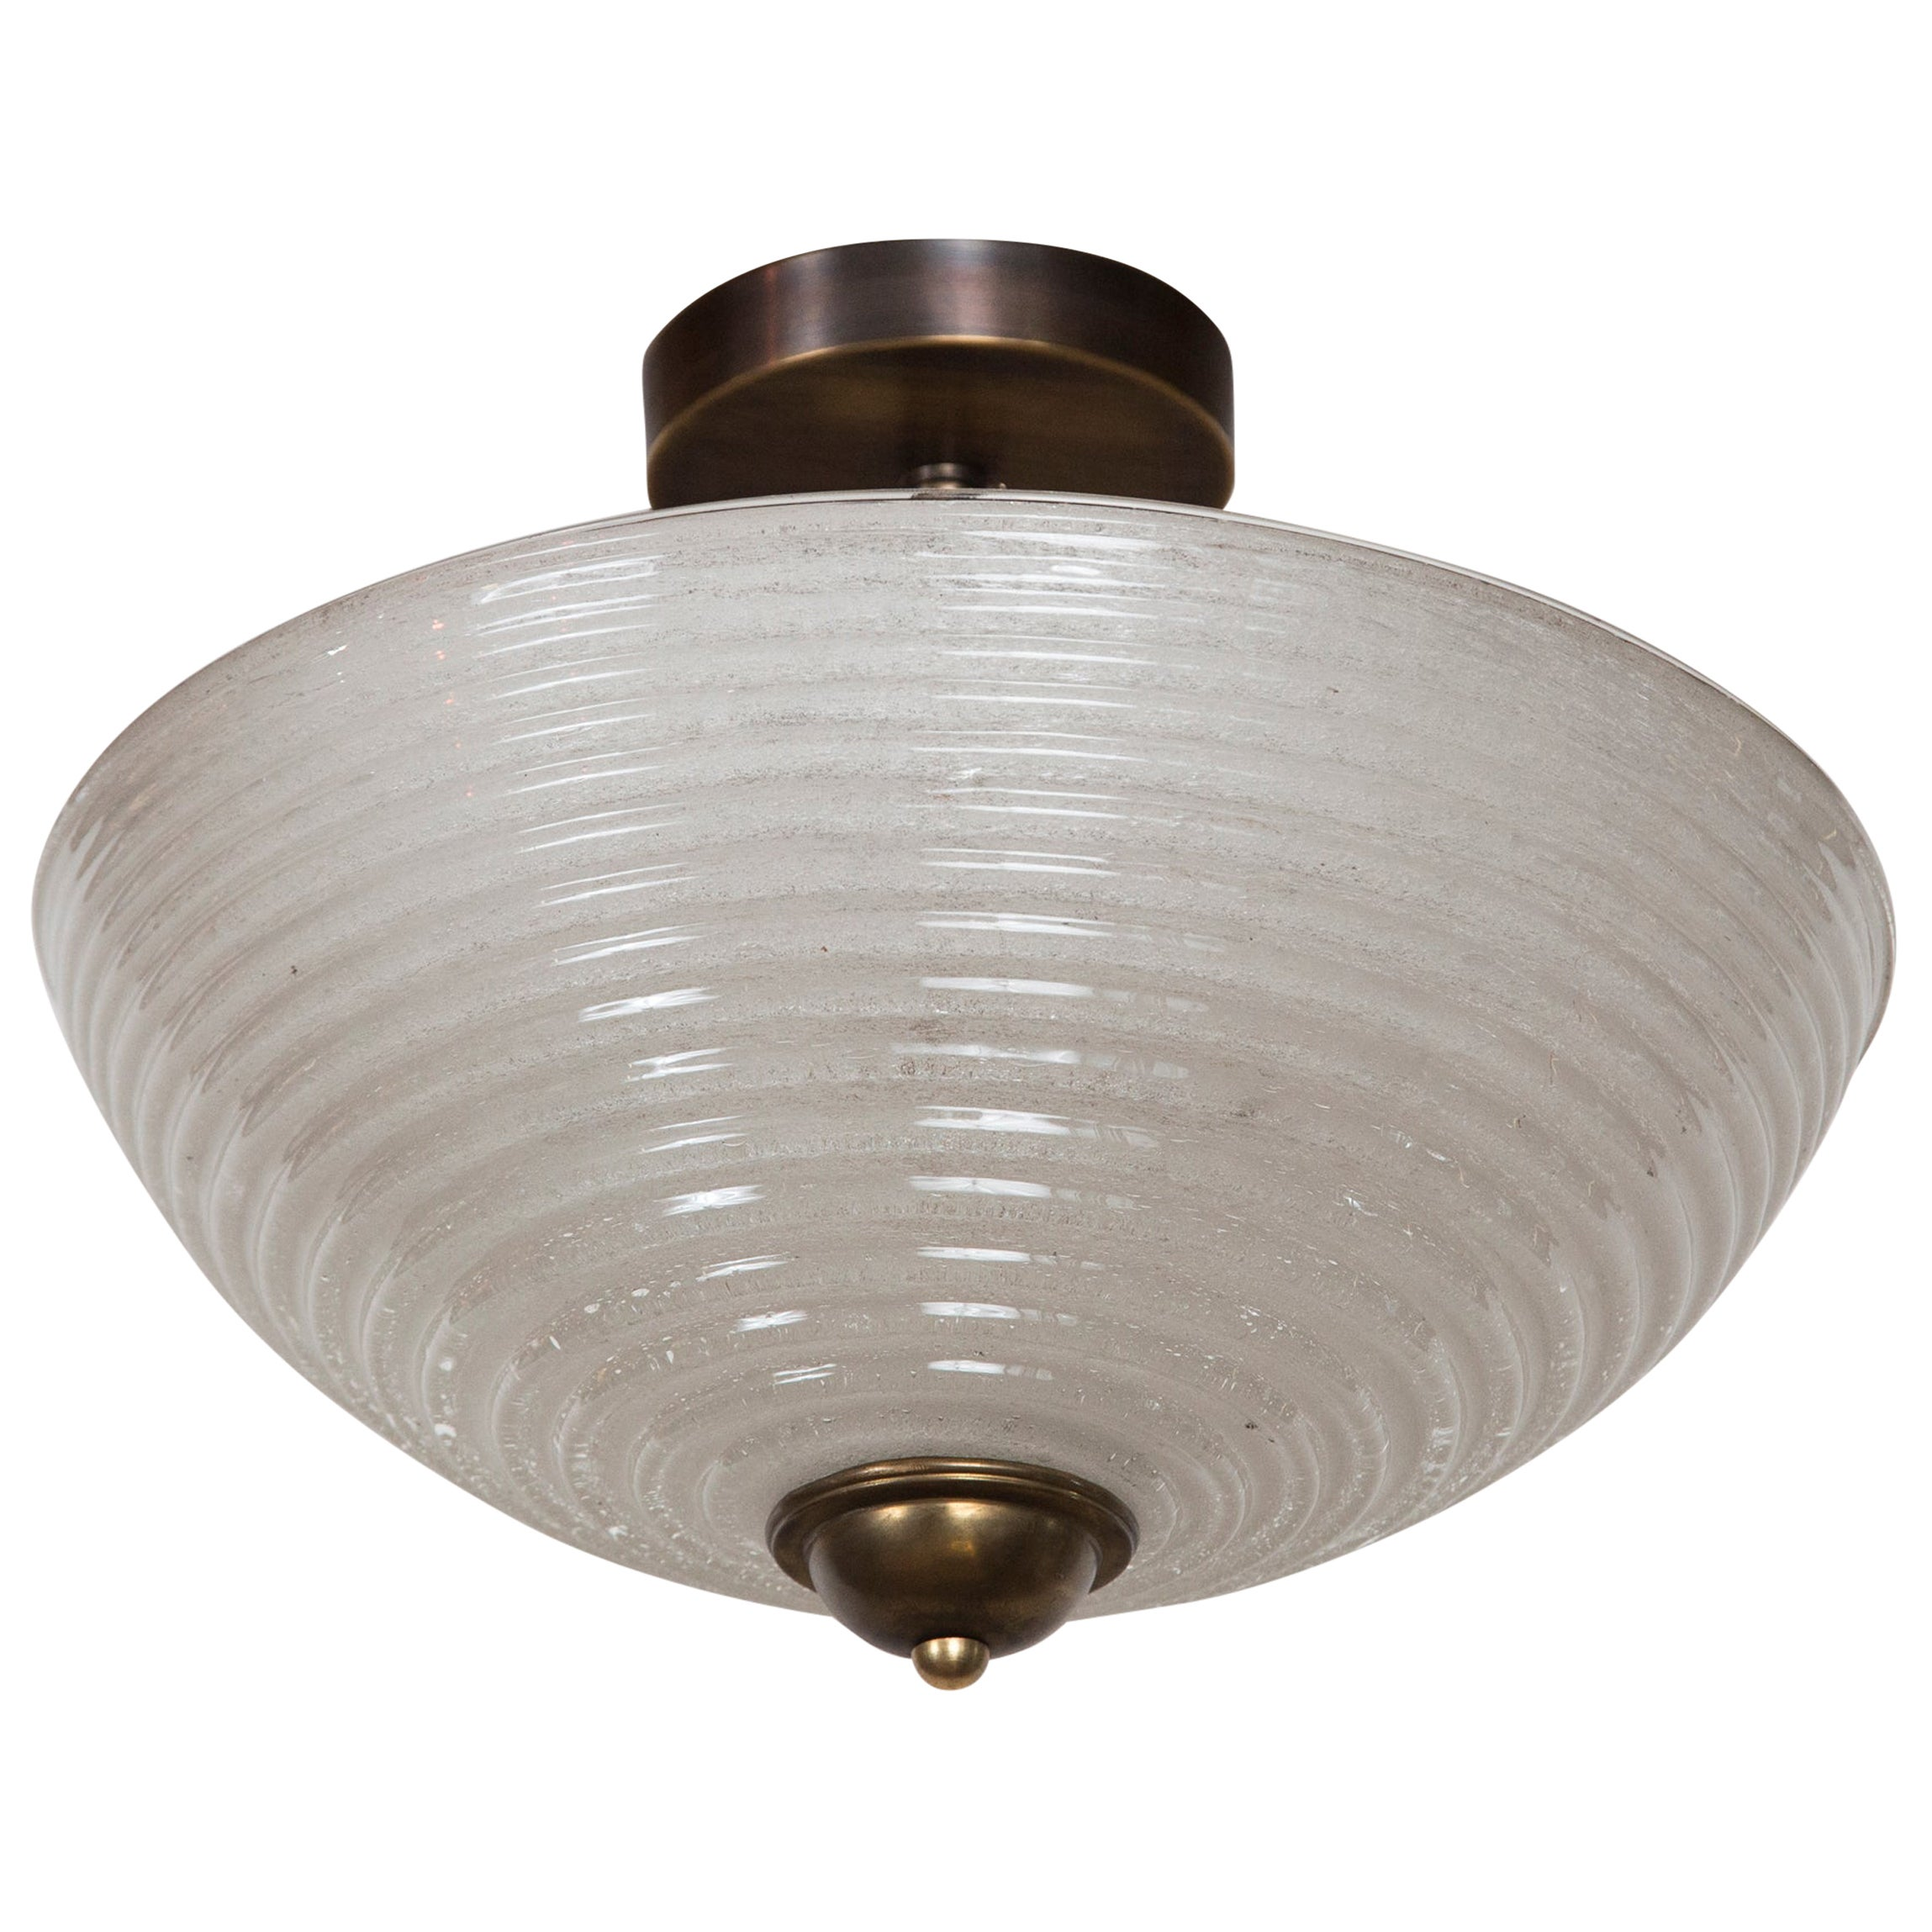 Set of 4 Mid Century Venini Ceiling Fixtures, Priced Individually